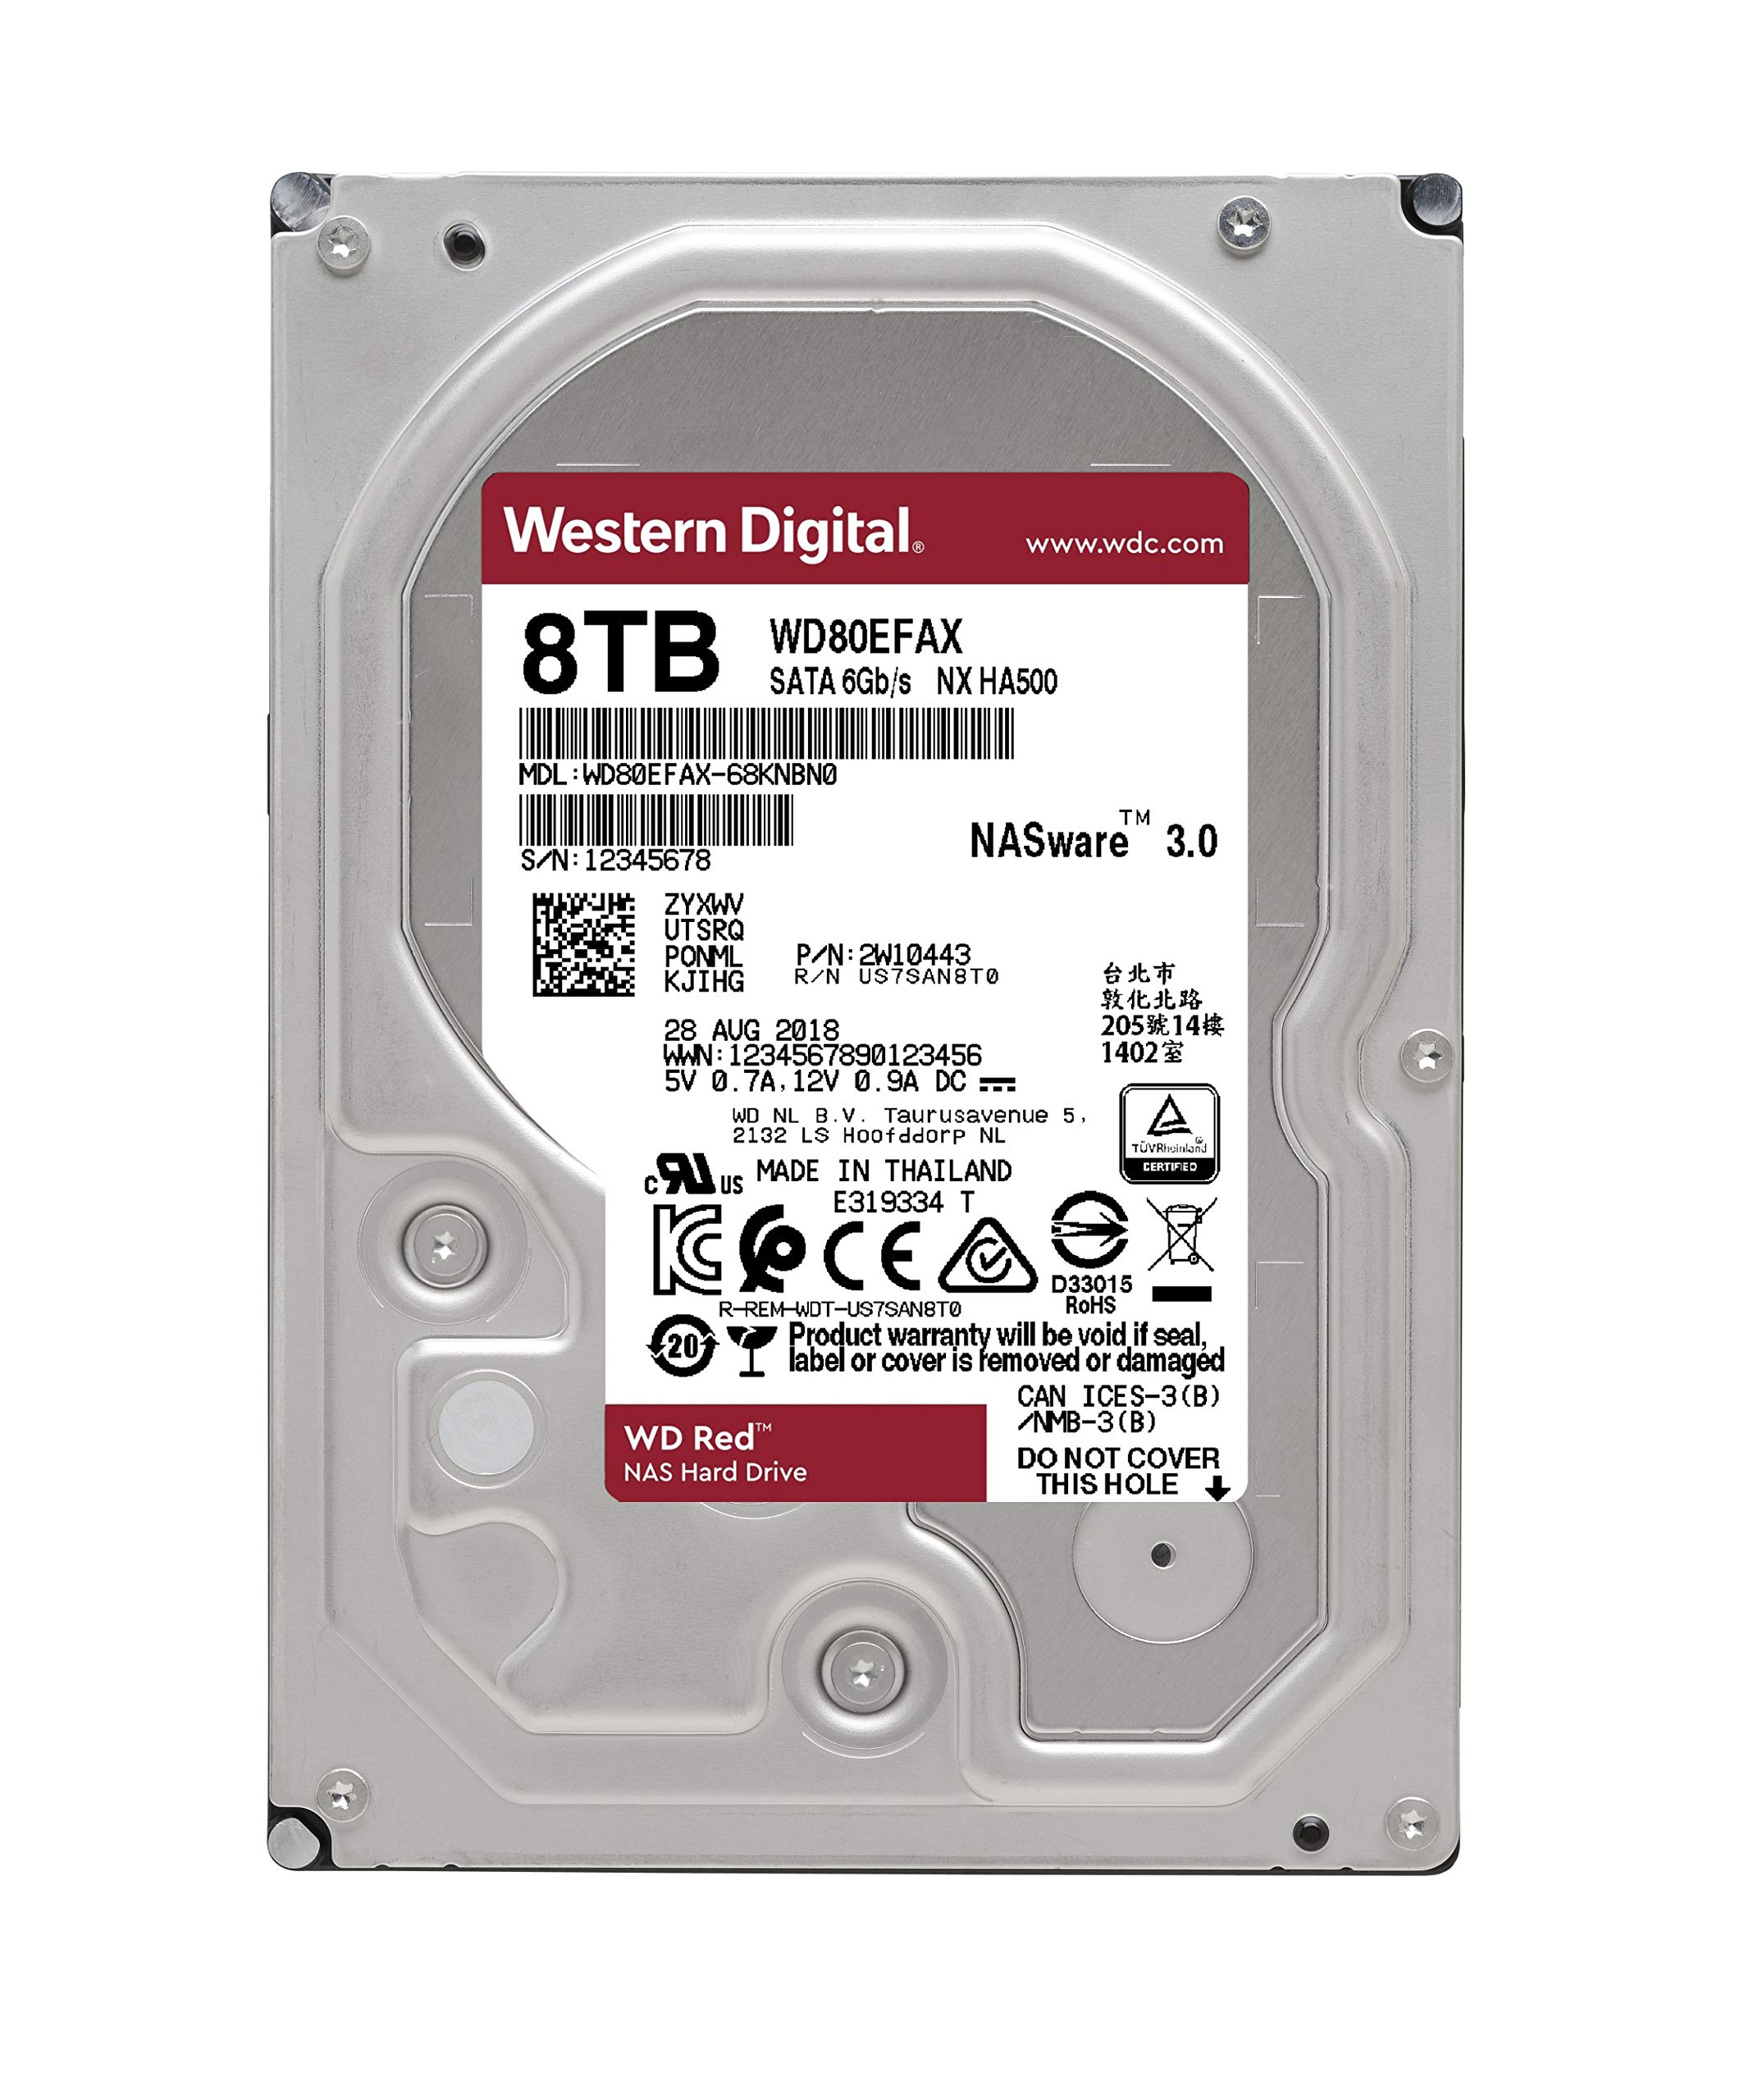 WD Red 8TB NAS Internal Hard Drive - 5400 RPM Class, SATA 6 Gb/s, 256 MB Cache, 3.5'' - WD80EFAX by Western Digital (Image #3)